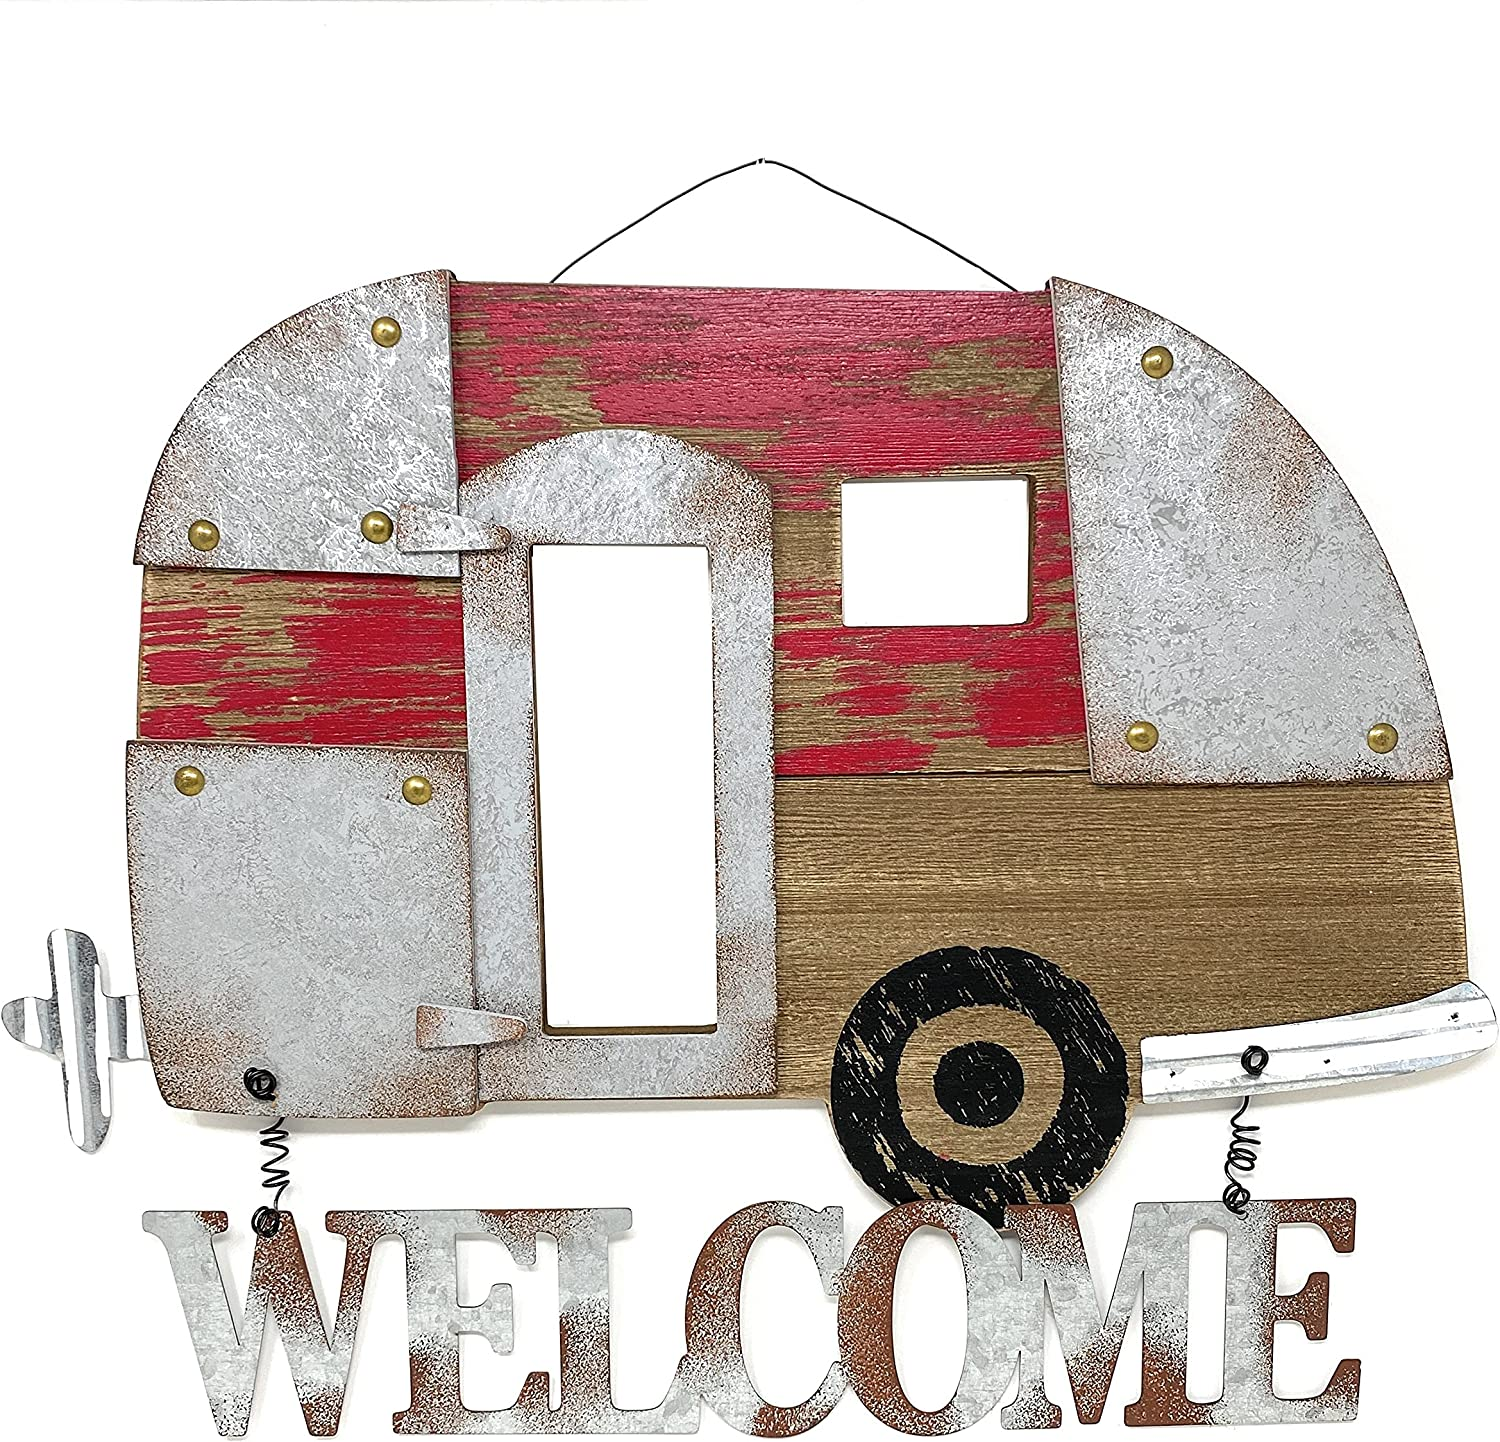 Welcome Camper RV Trailer Sign Large Rustic Front Door Wall Wood Metal Outdoorsy Inspired Accent Decor 17